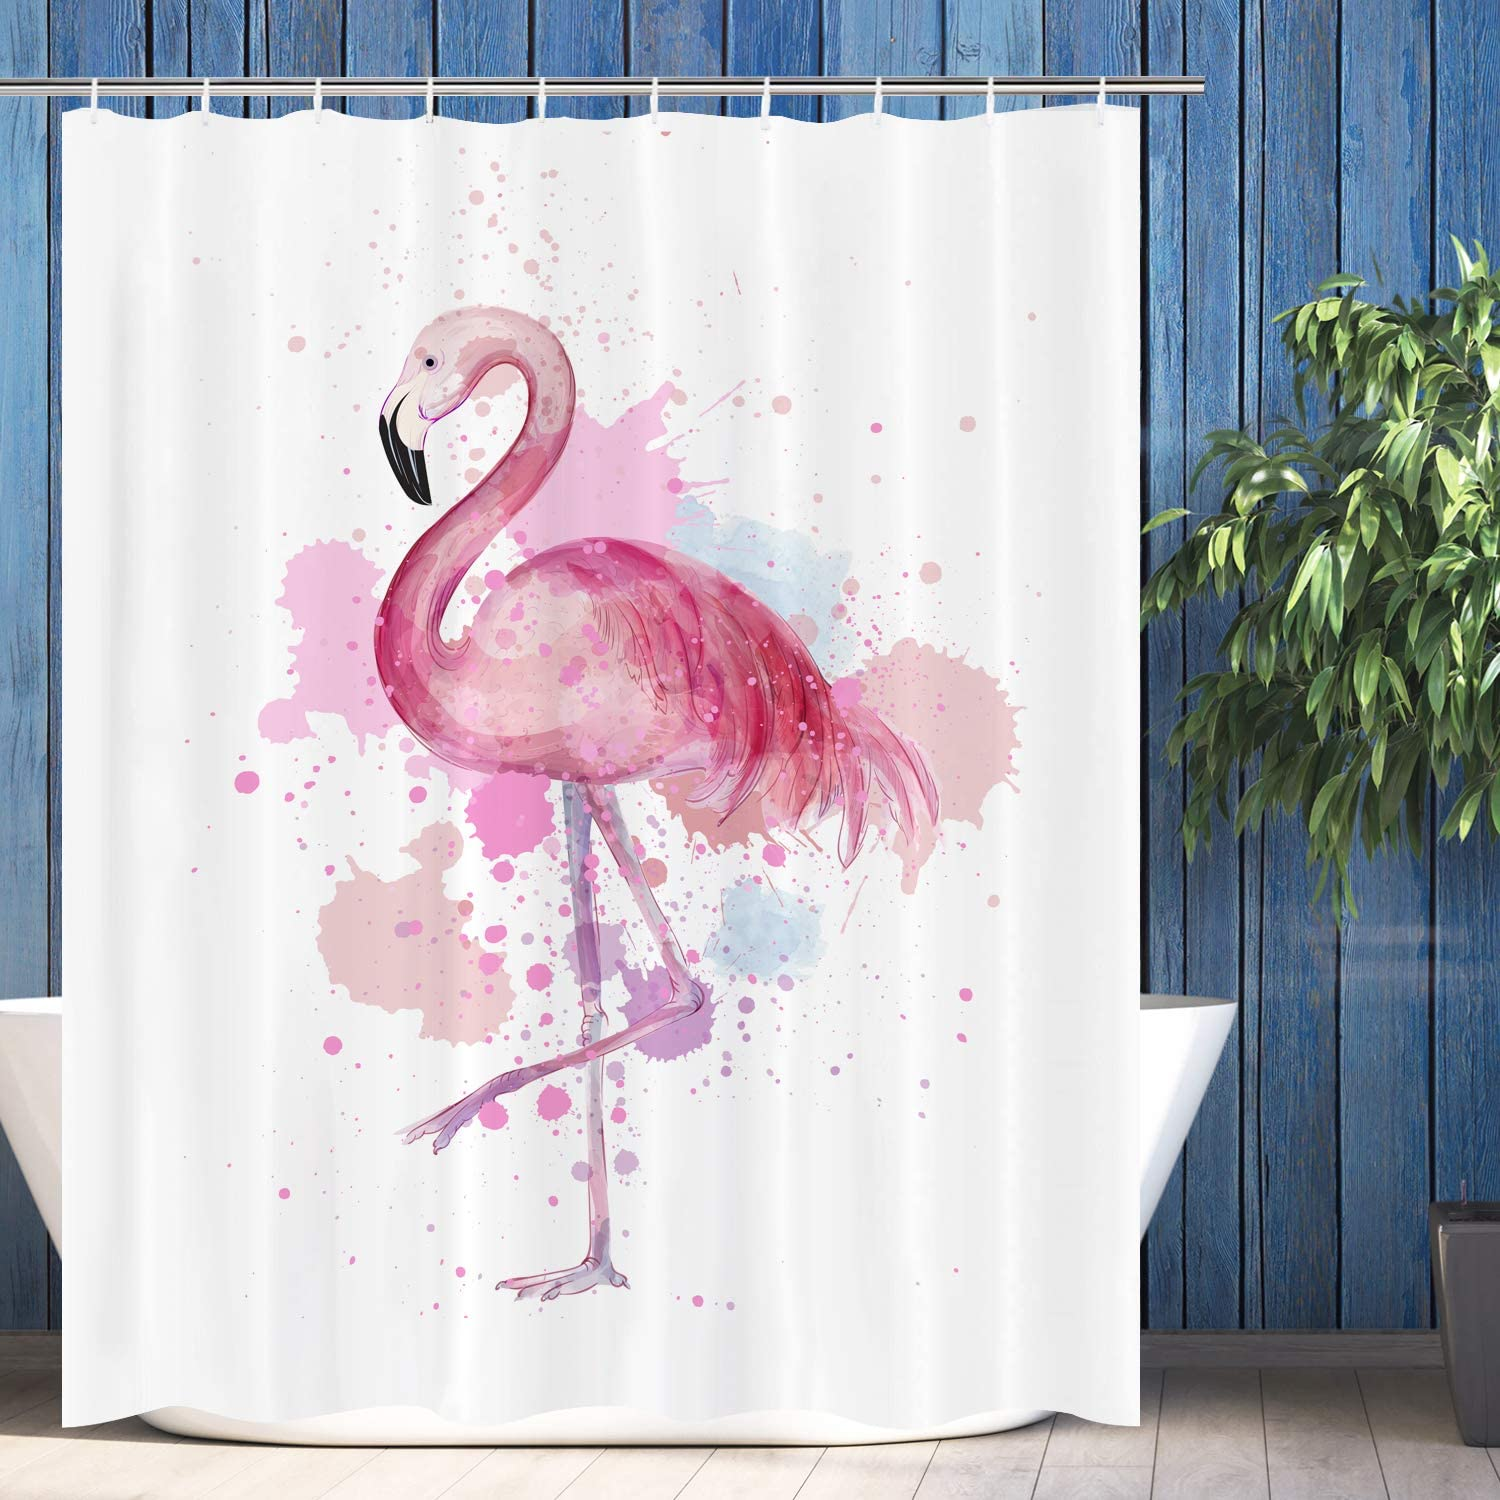 VIMMUCIR Flamingo Shower Curtain, Retro Tropical Flamingo Print with Watercolor Splash Polyester Bathroom Curtains for Home Decor, Stalls and Bathtubs, Water Repellent, 12 Hooks Included, 60